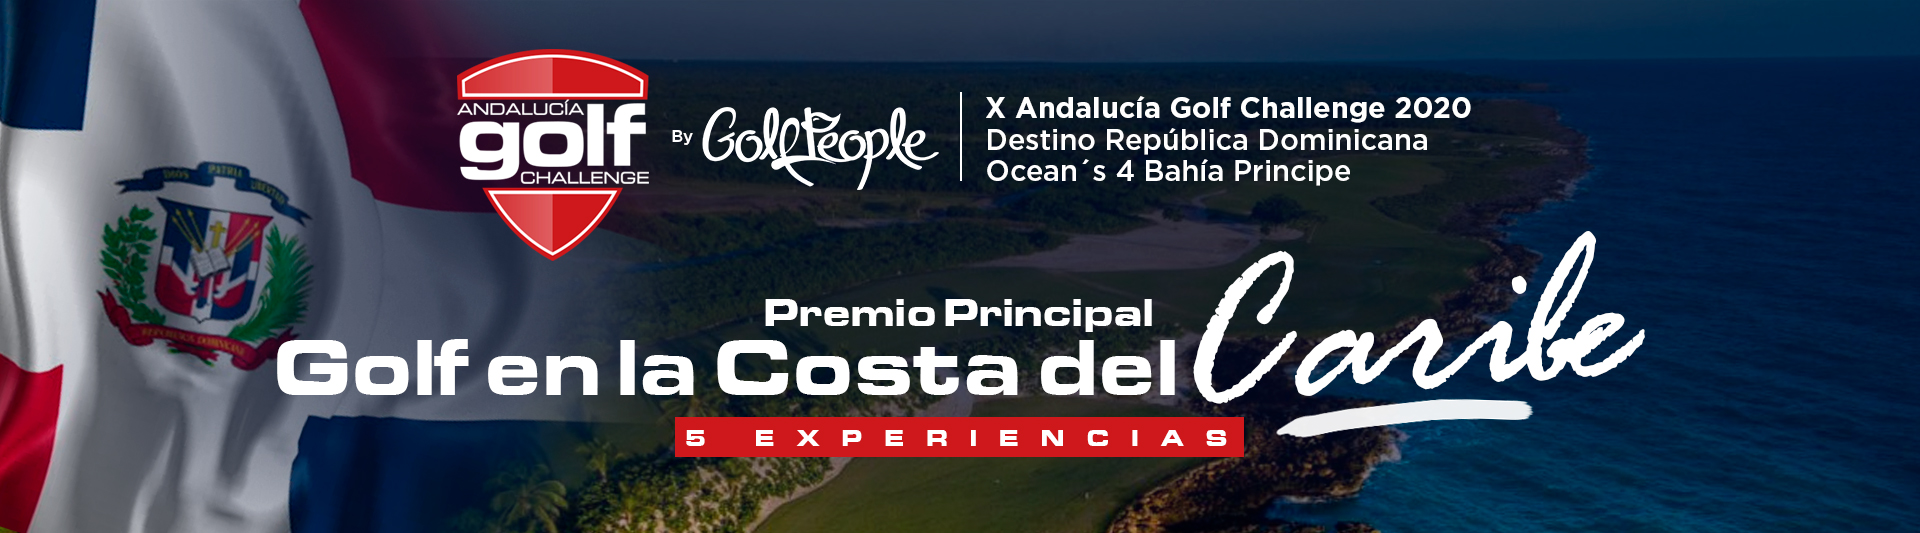 golf-costa-caribe-2020